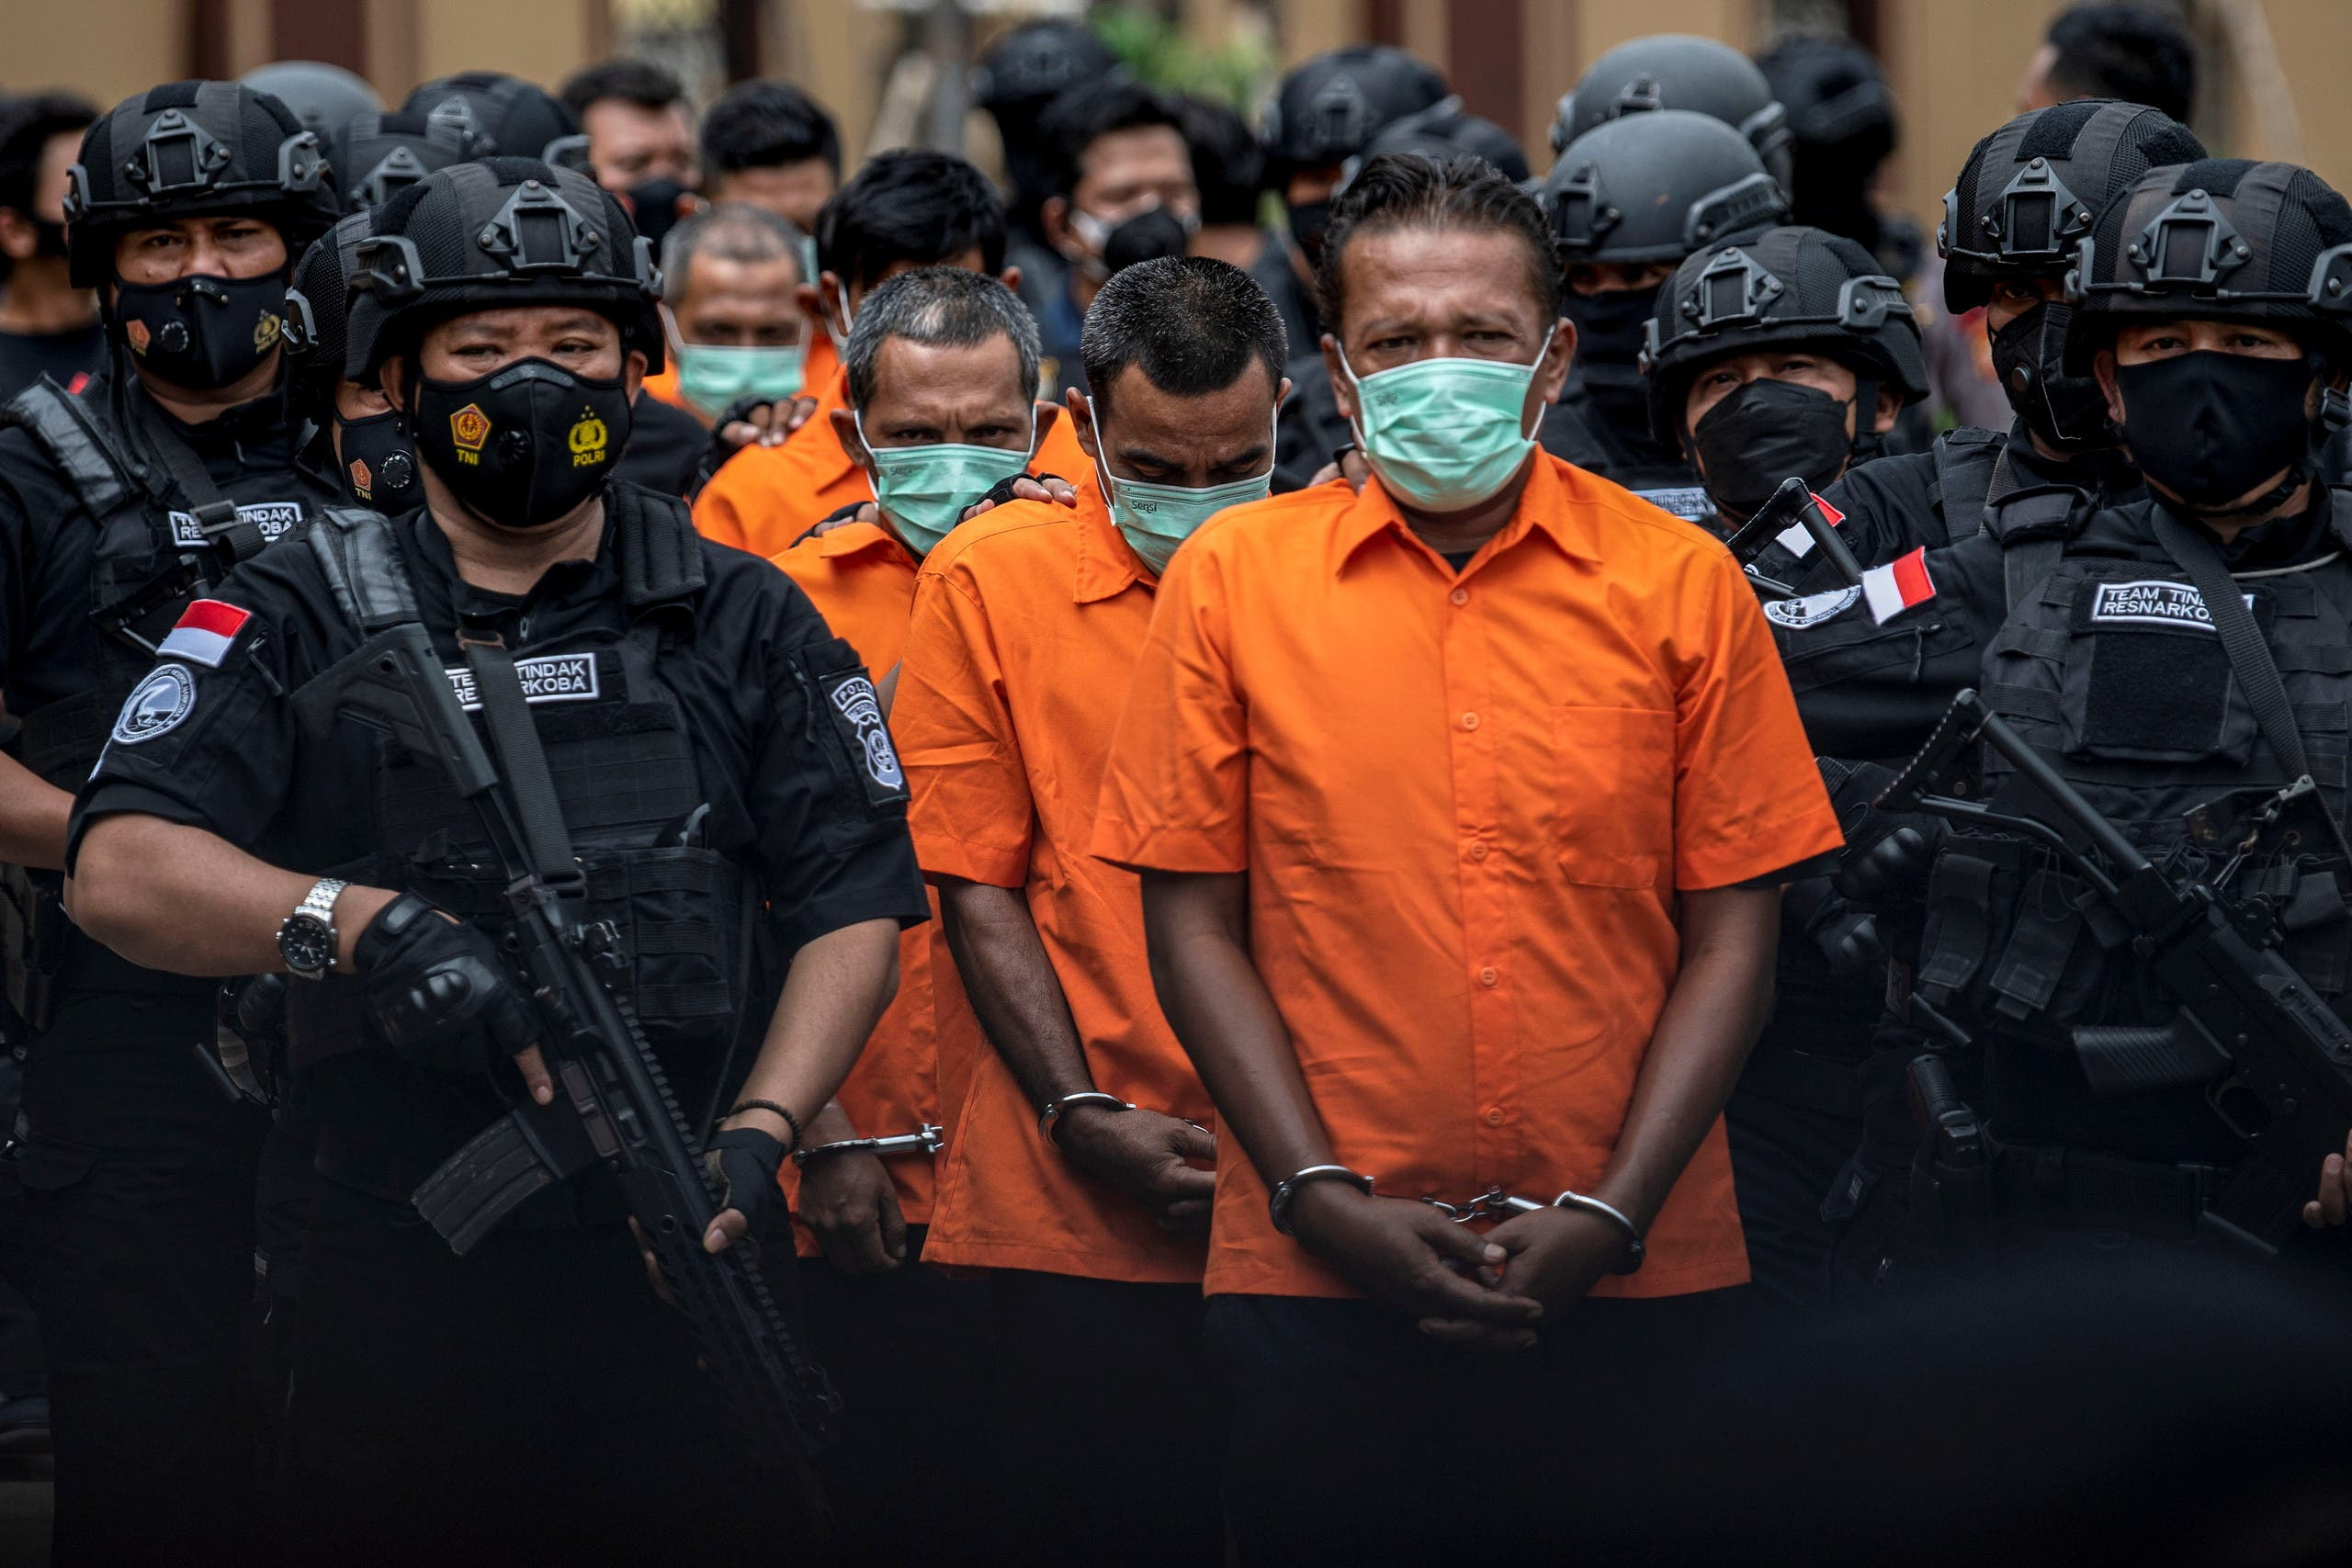 Indonesia Police officers escort suspected drug smugglers during media conference in Jakarta. (Reuters)